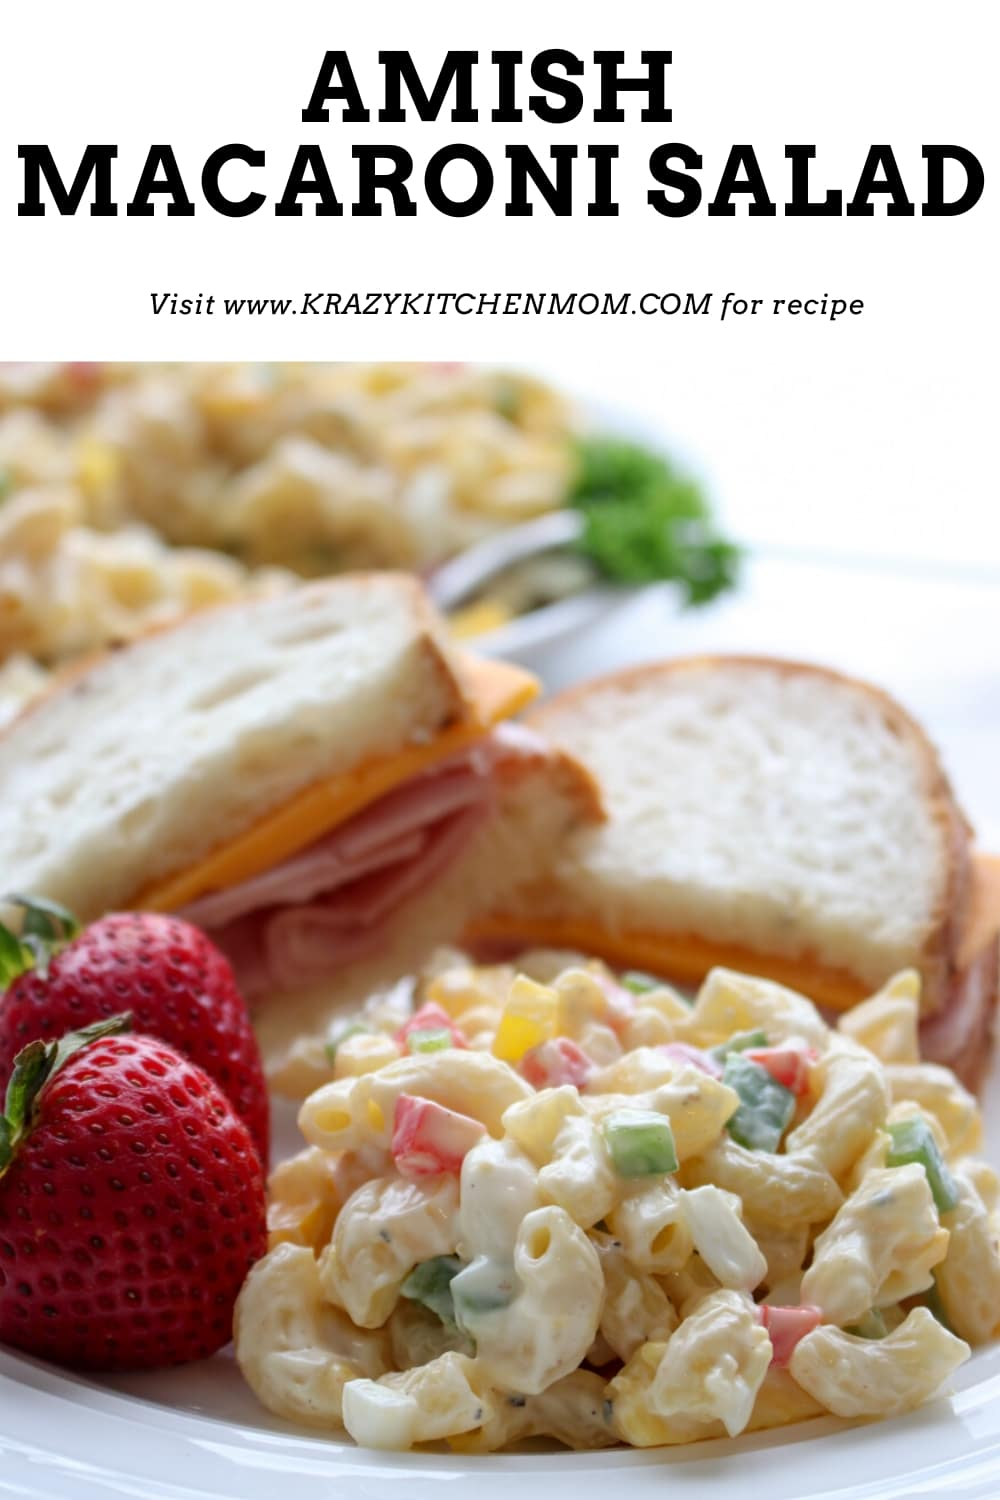 Sweet Tangy Amish Macaroni Salad is a classic summer side dish. It's full of fresh bell peppers, celery, and hard-boiled eggs. via @krazykitchenmom